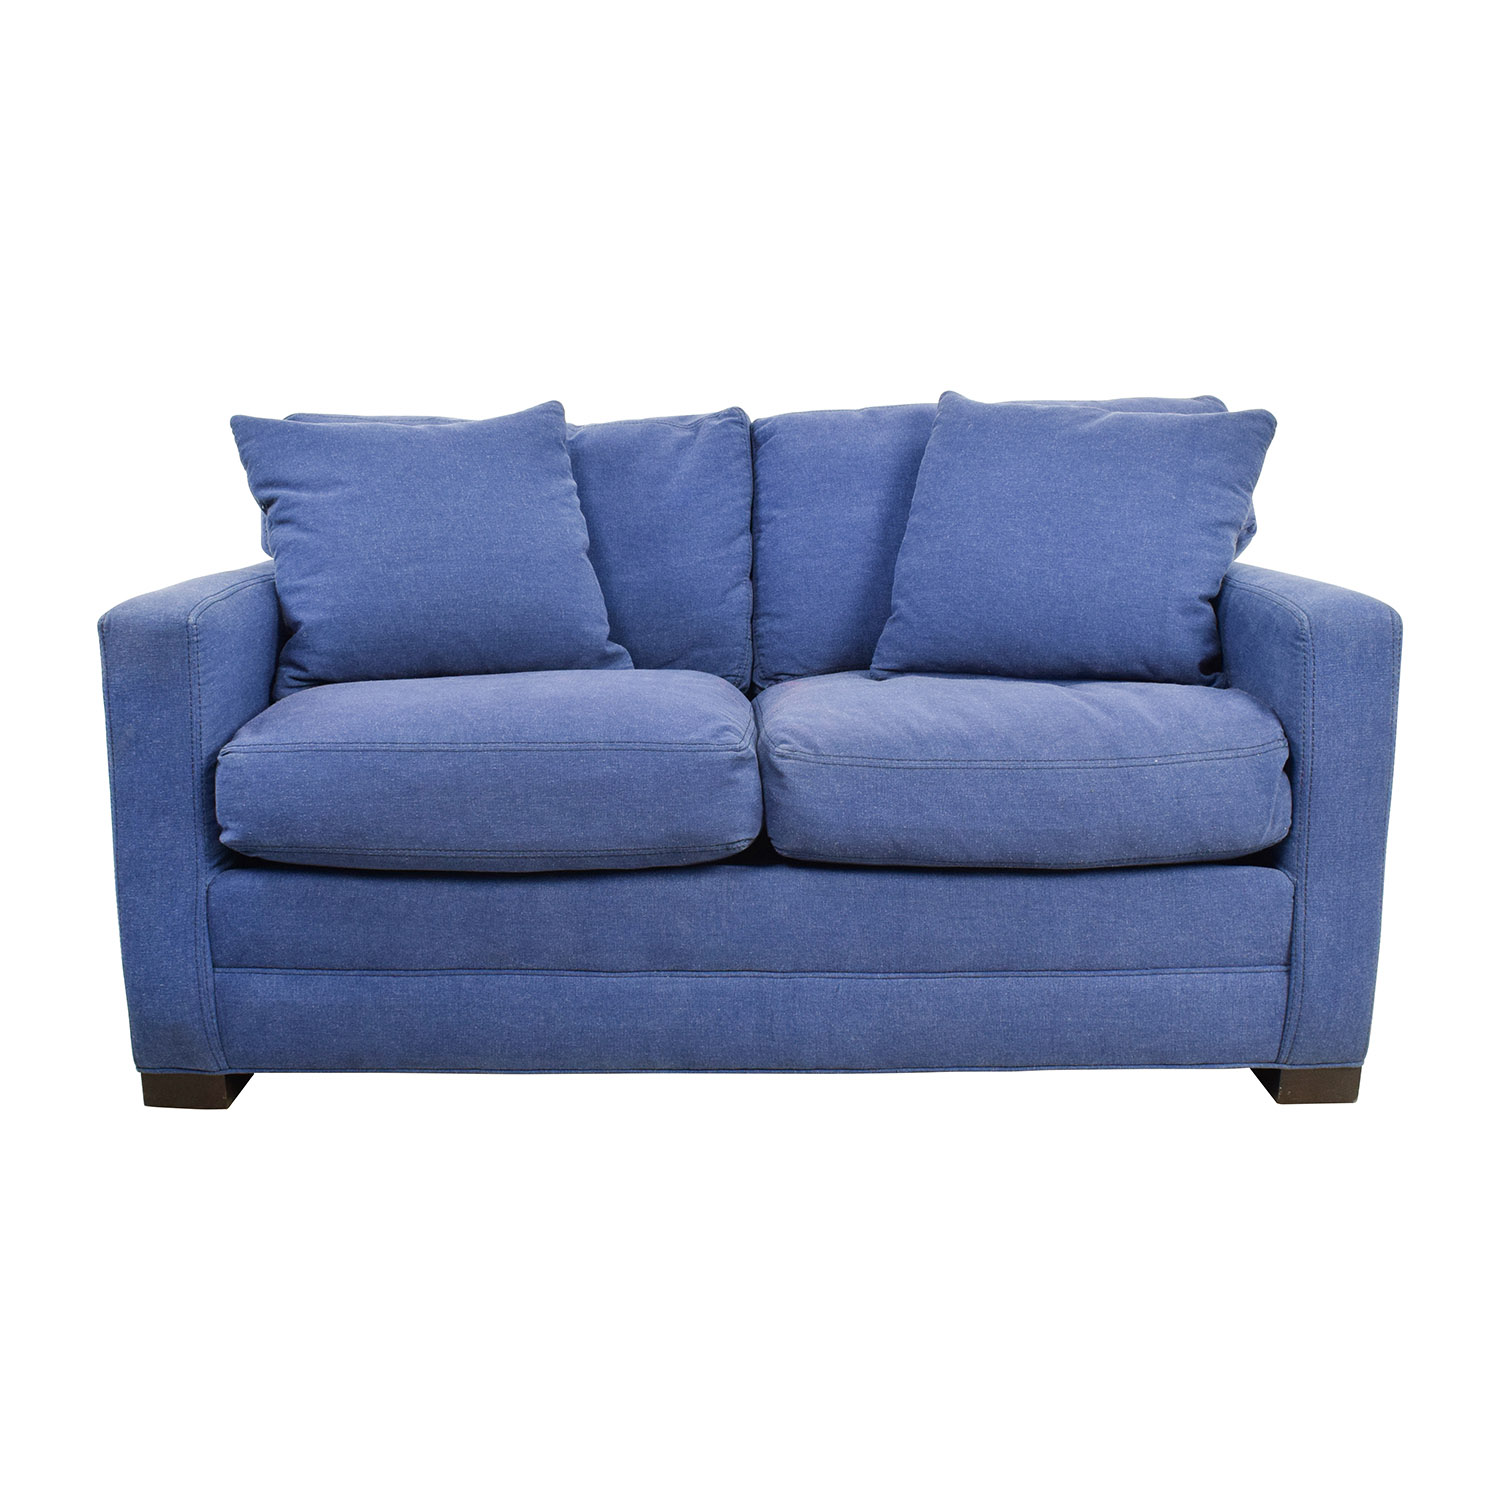 Denim Sofa And Loveseat Blue Jean Sofas Queen Sleeper Sofa Raymour Thesofa